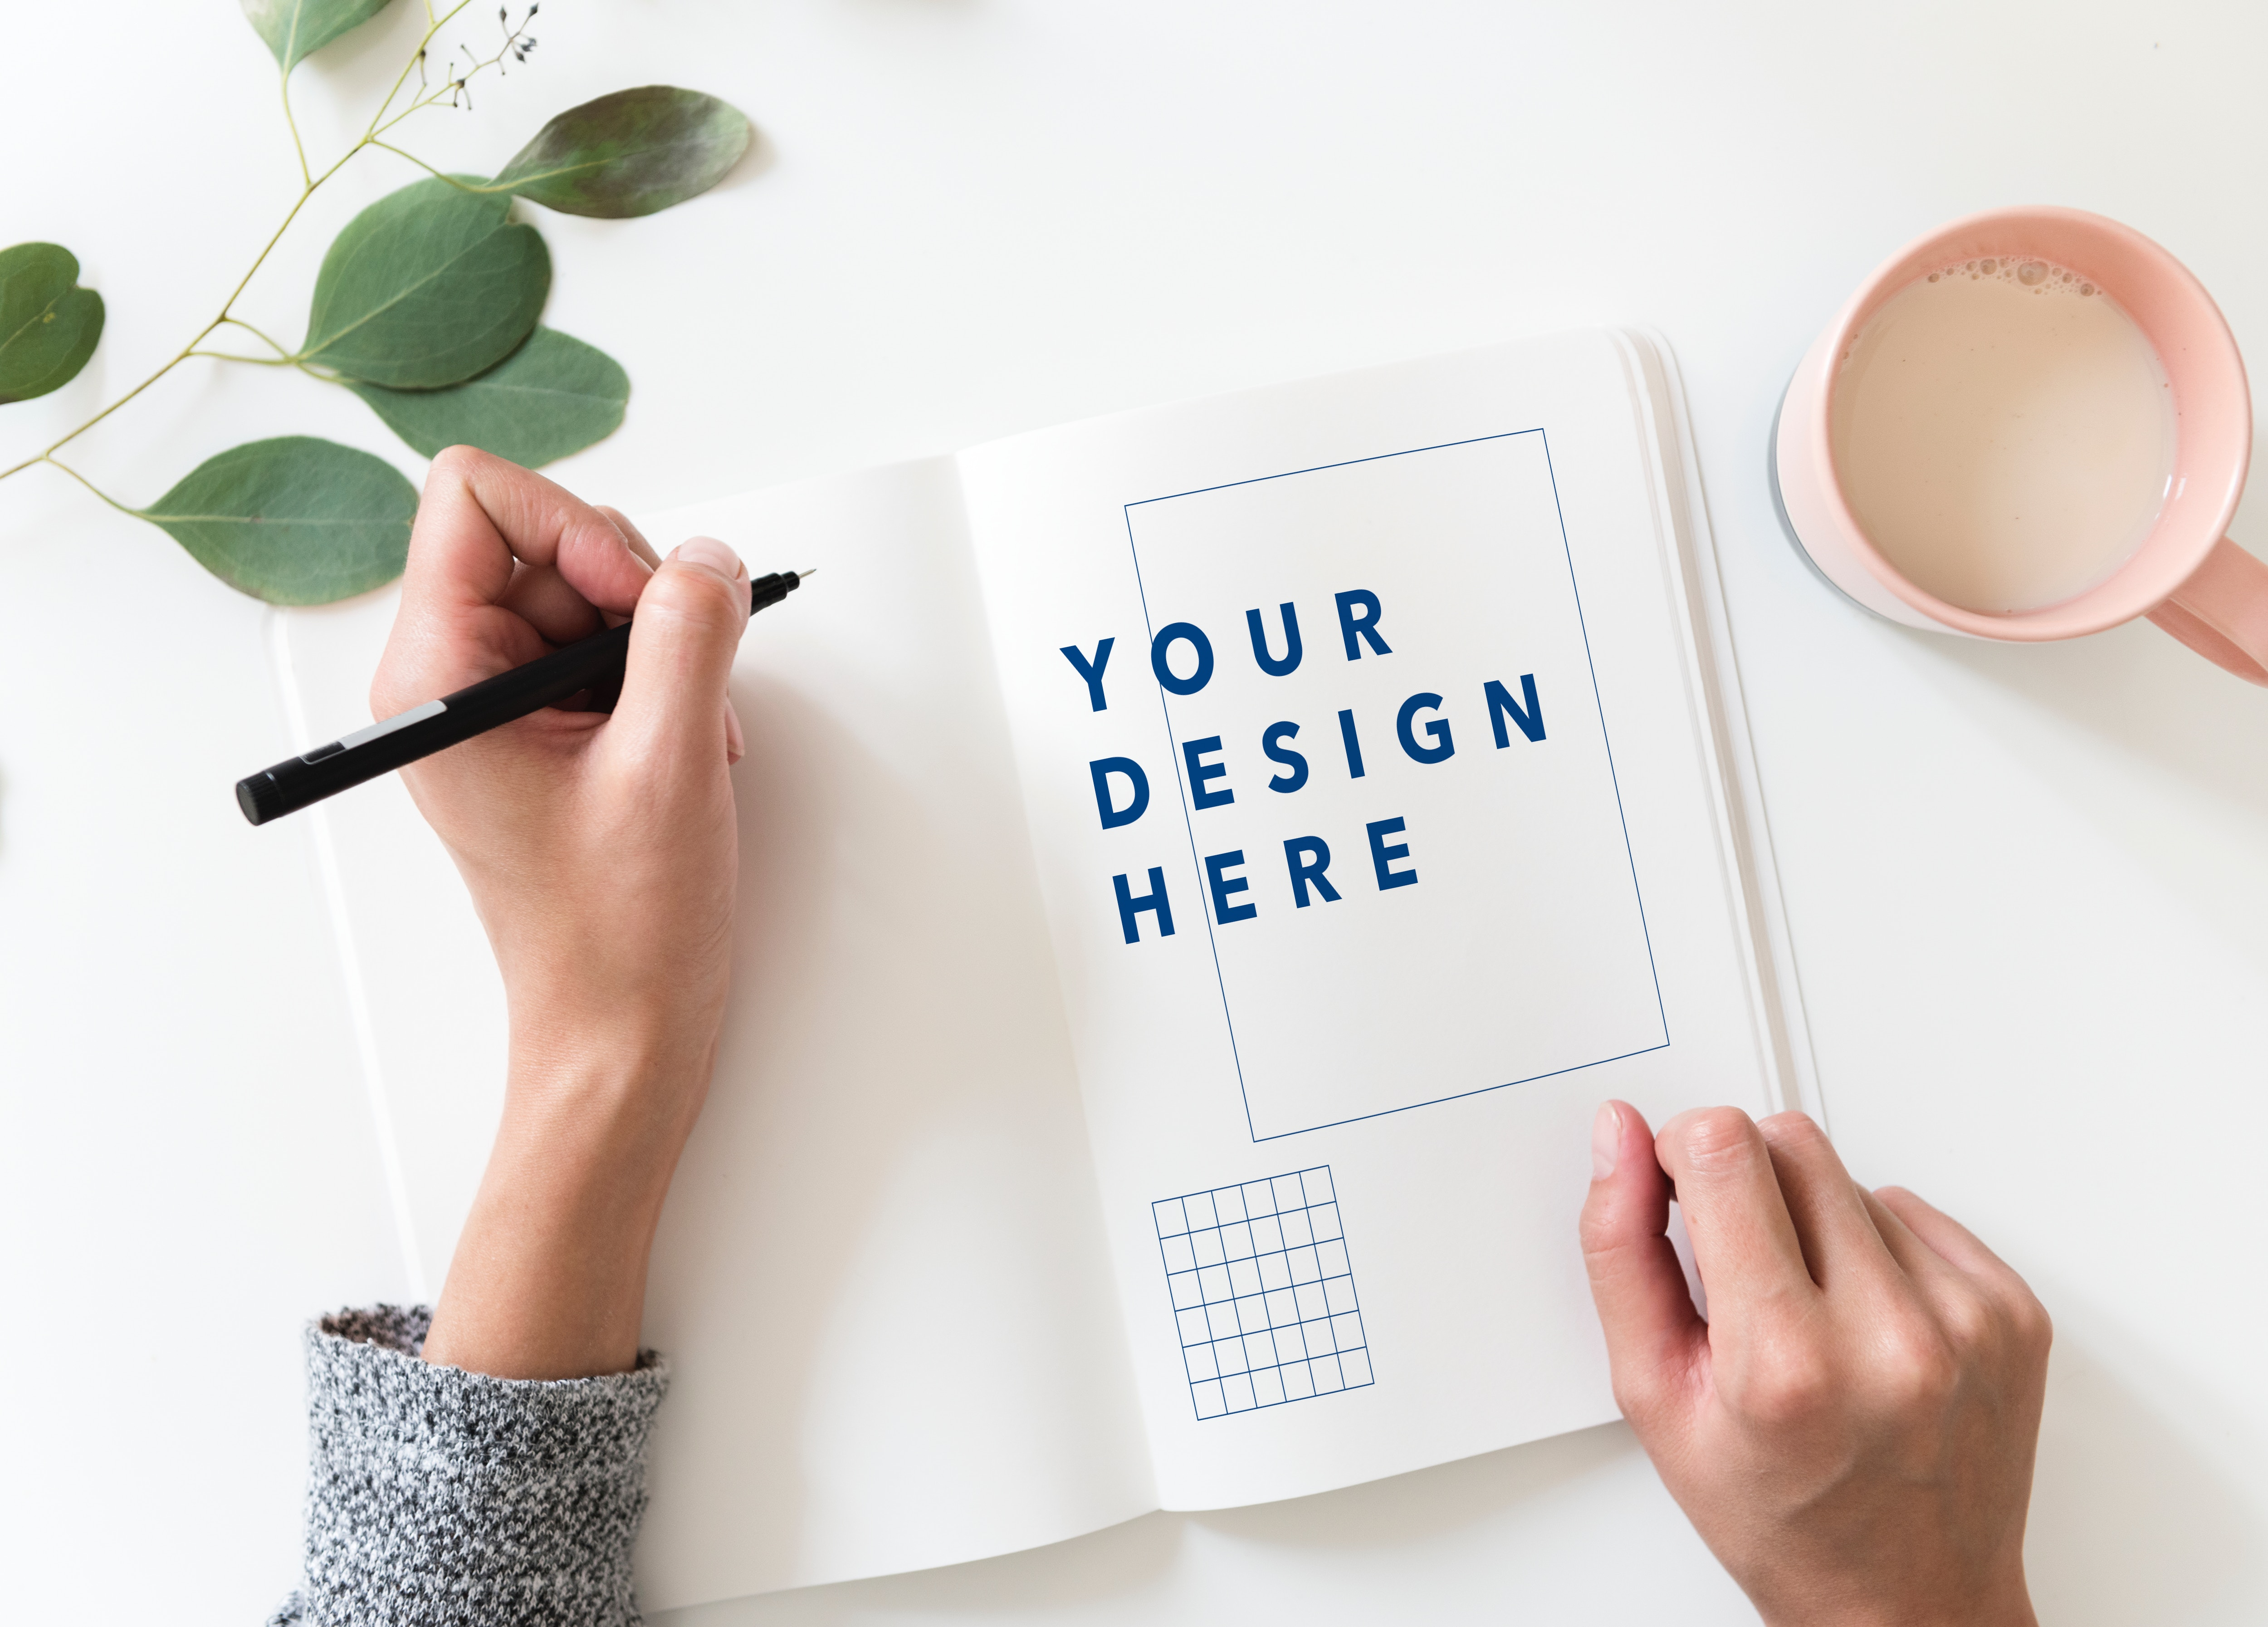 A person holds a pen over paper to begin creating a design with a template.